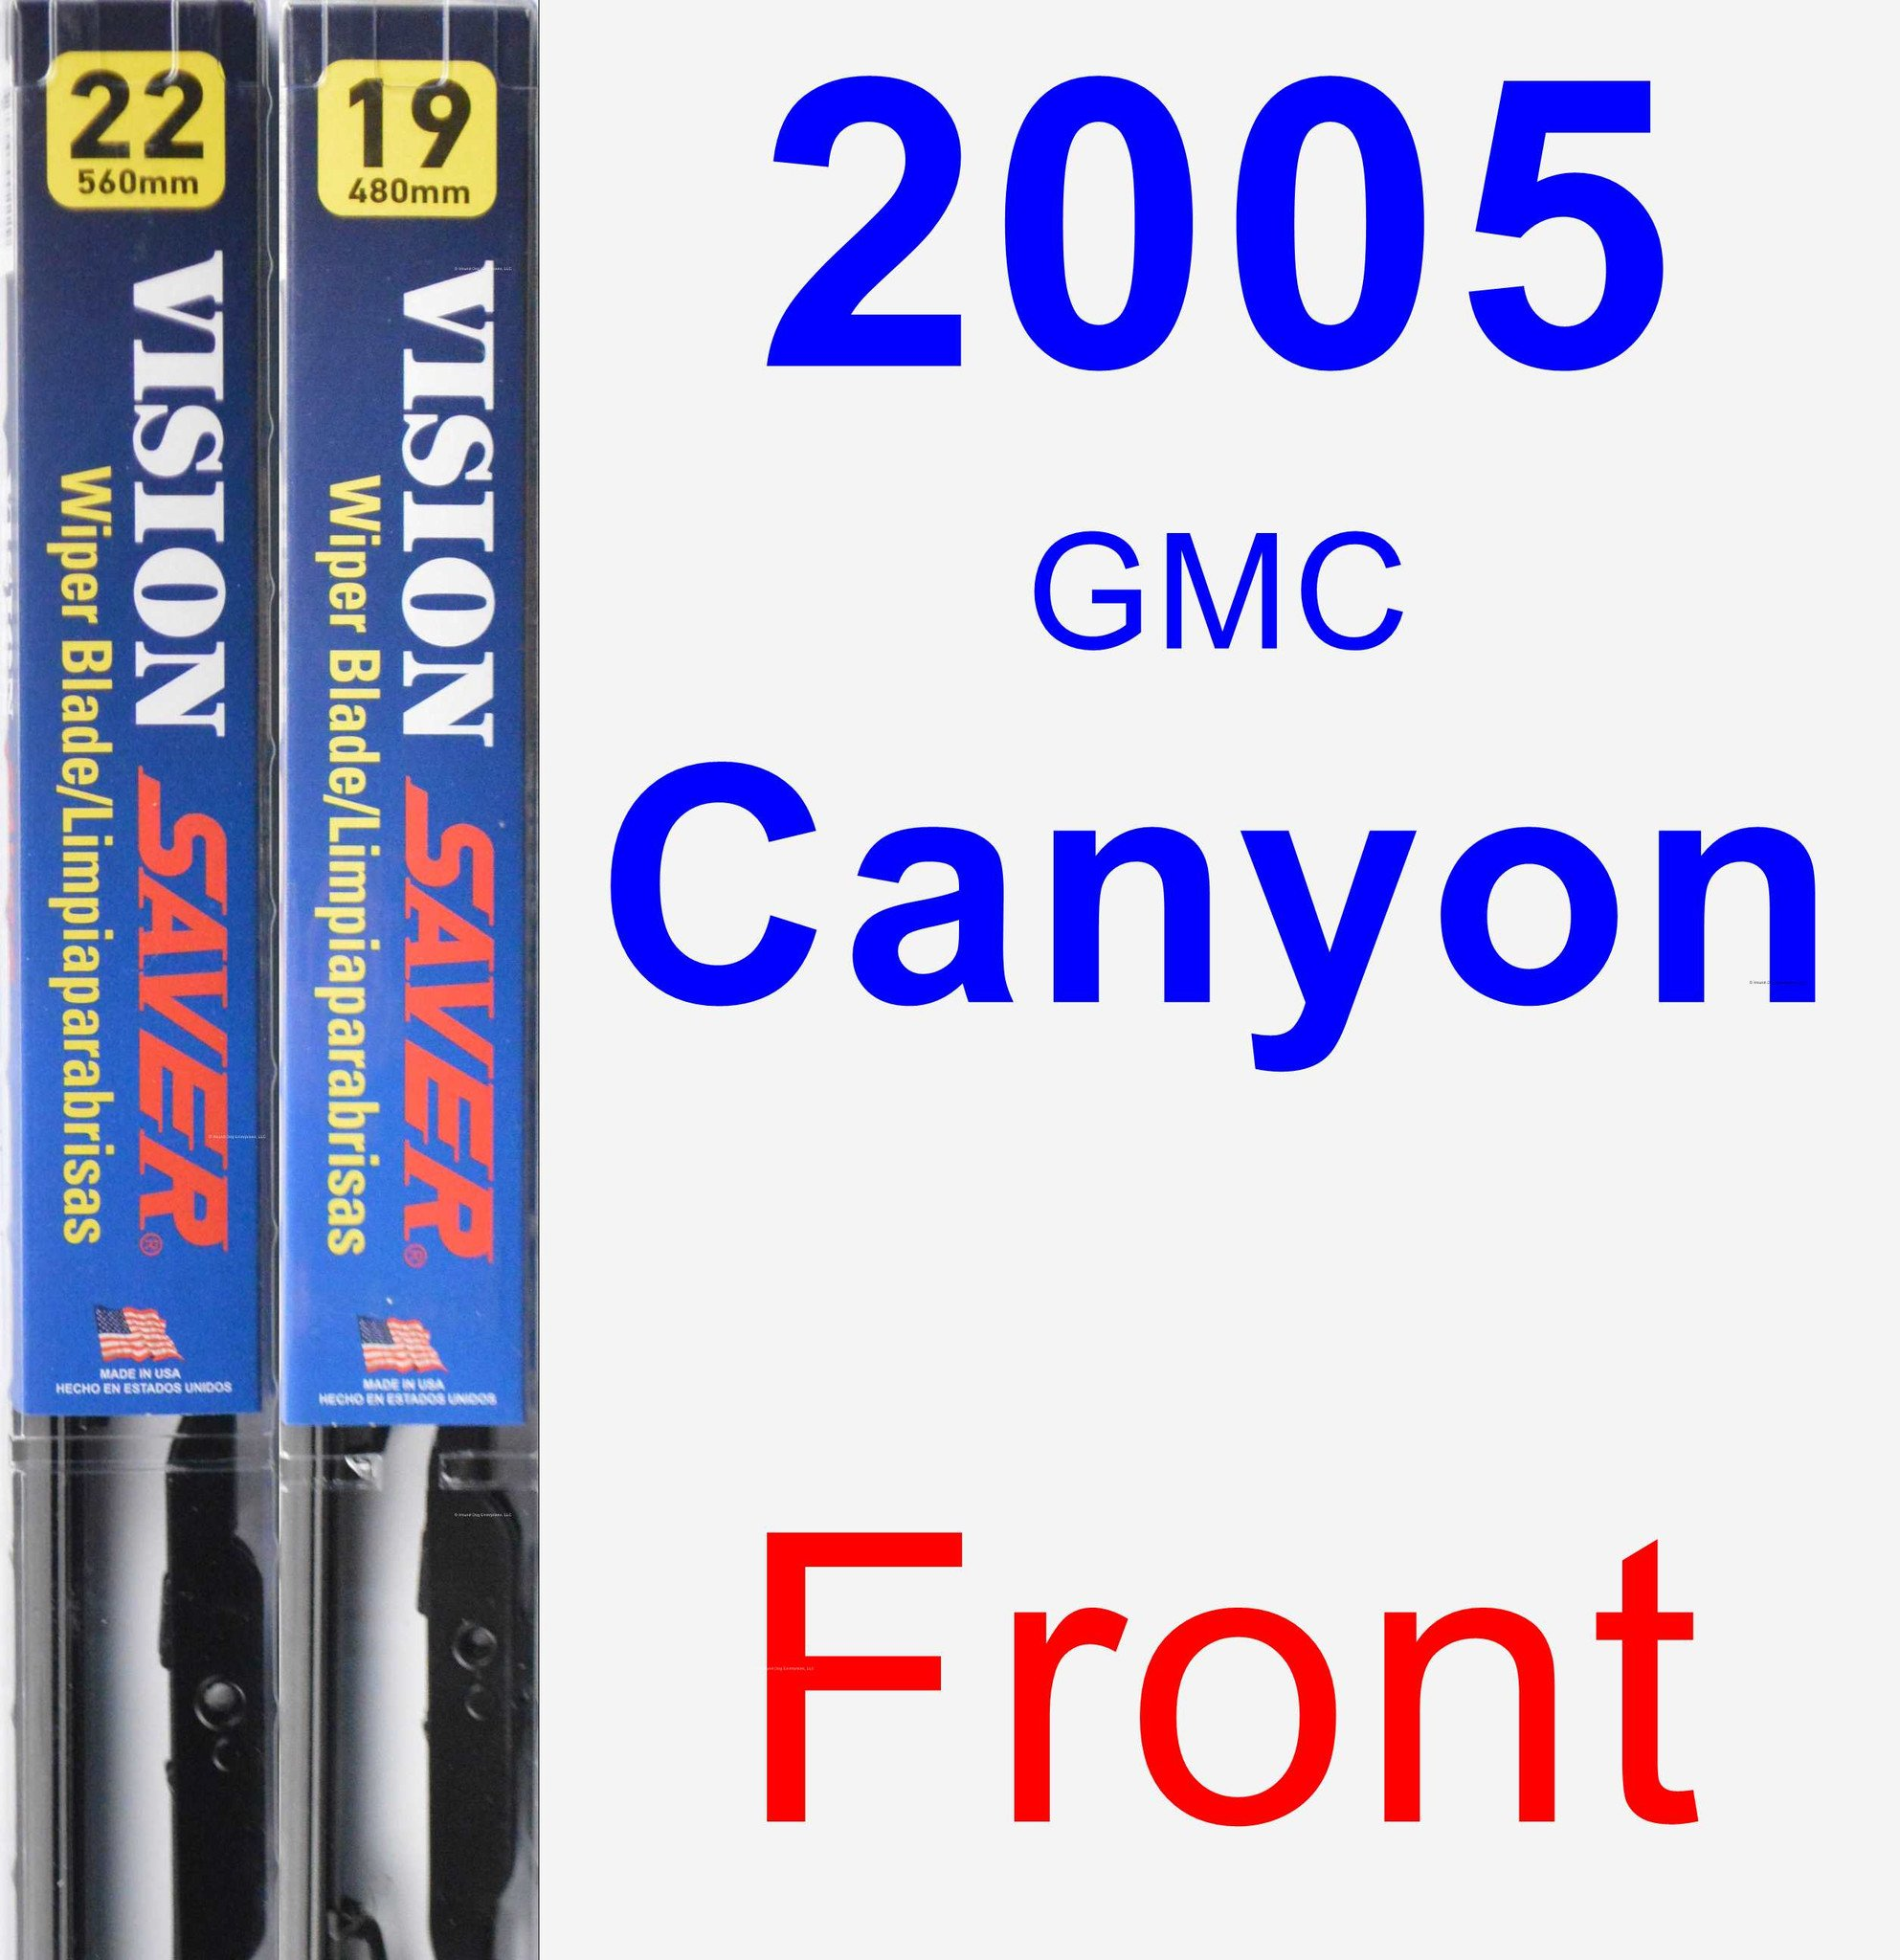 2005 GMC Canyon Wiper Blade Set/Kit (Front) (2 Blades) - Vision Saver